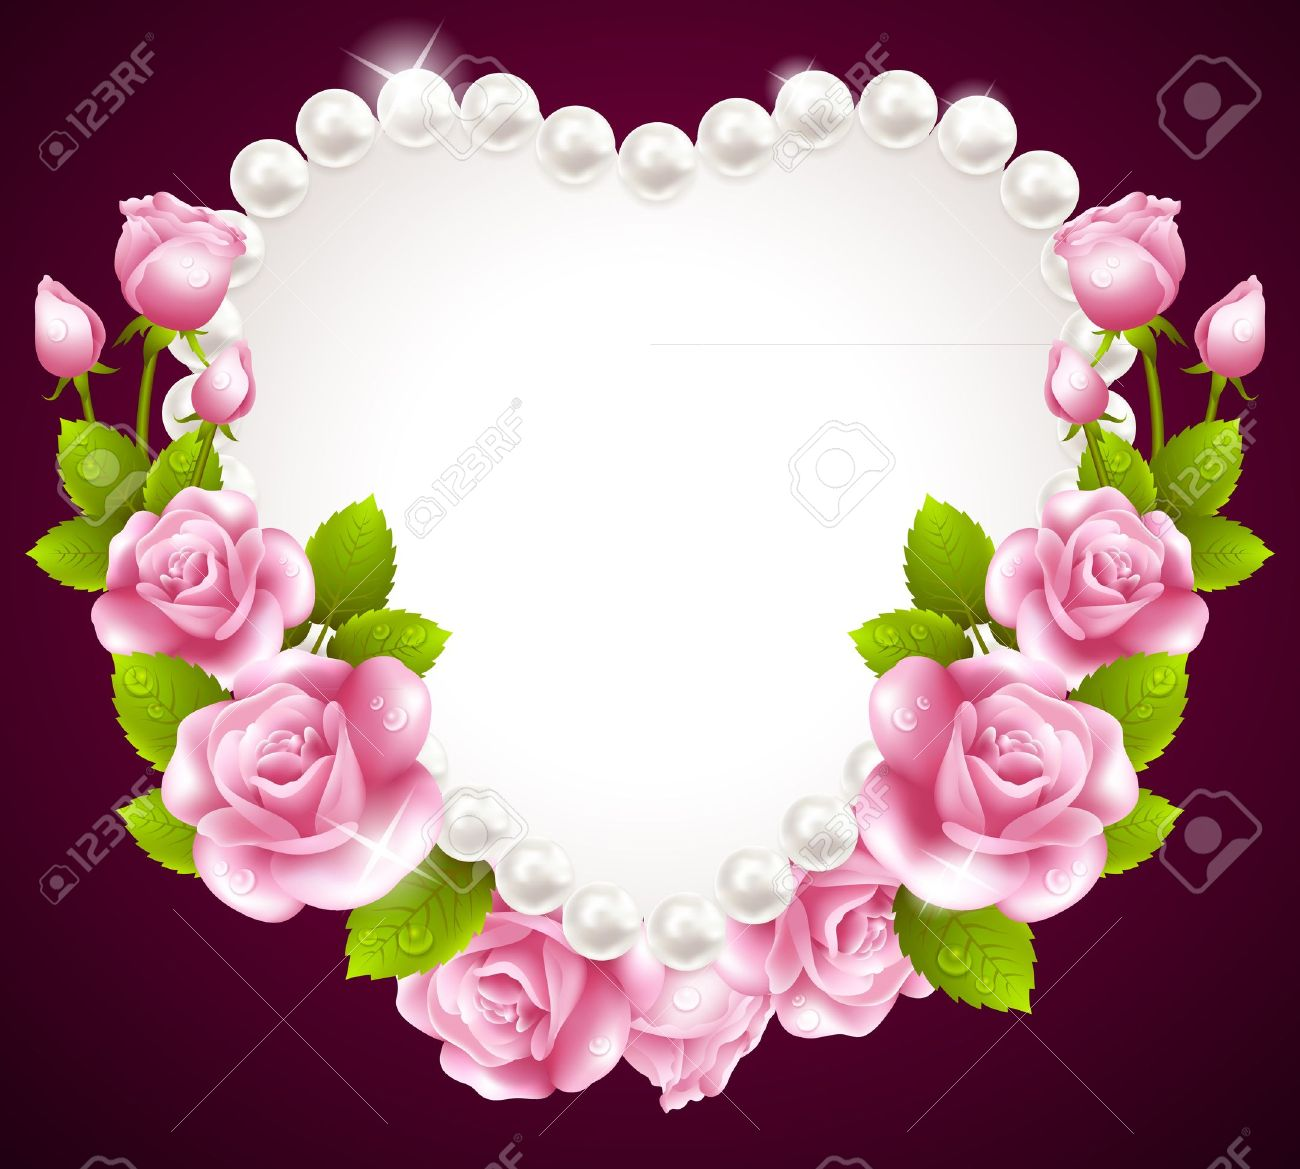 Hqert pink rose and pearls frame Stock Vector - 21528790